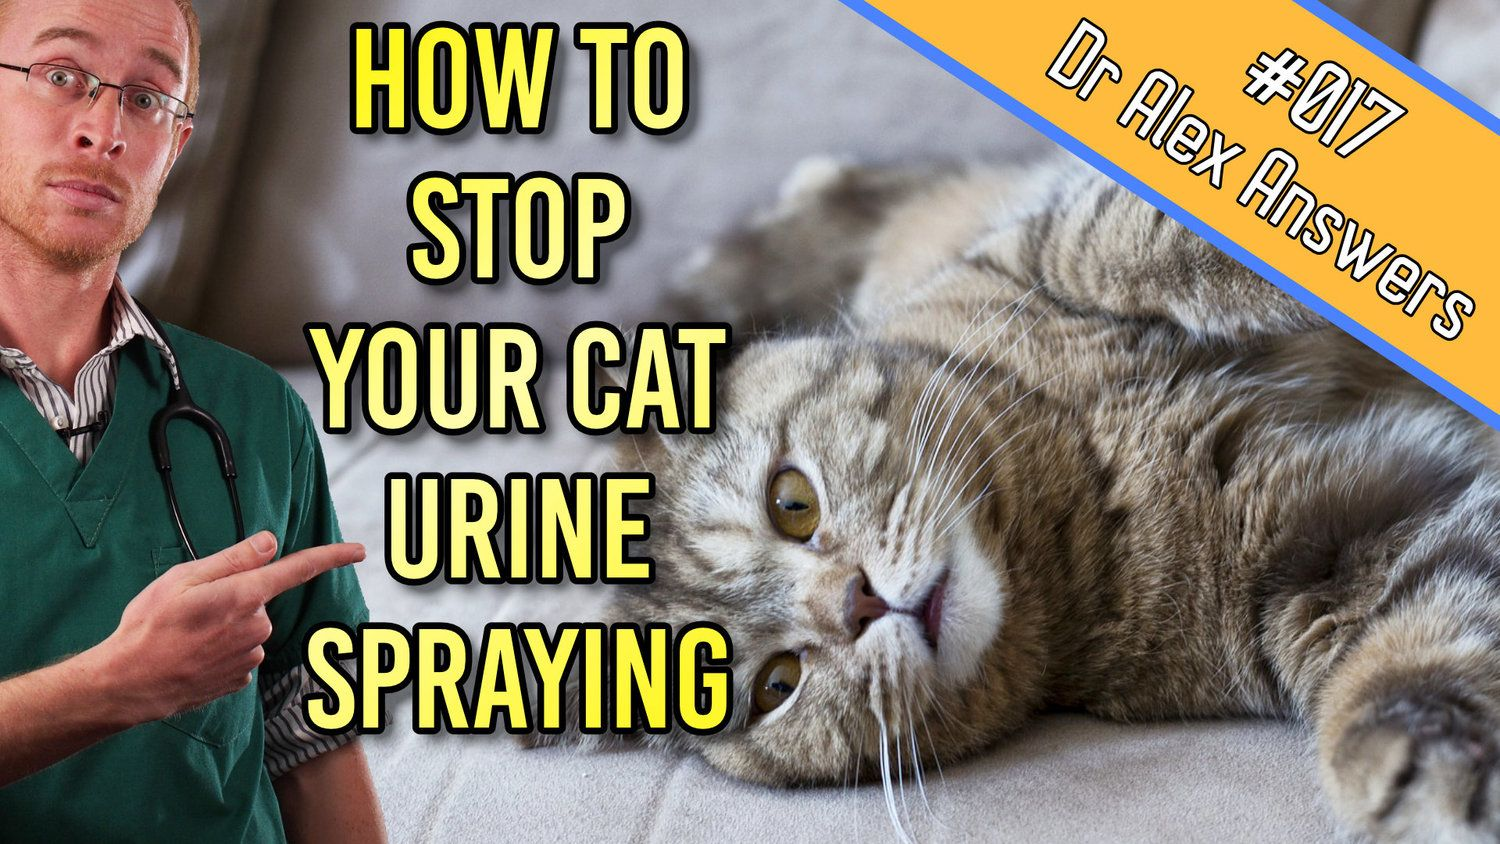 If your cat is spraying on the furniture or urinating